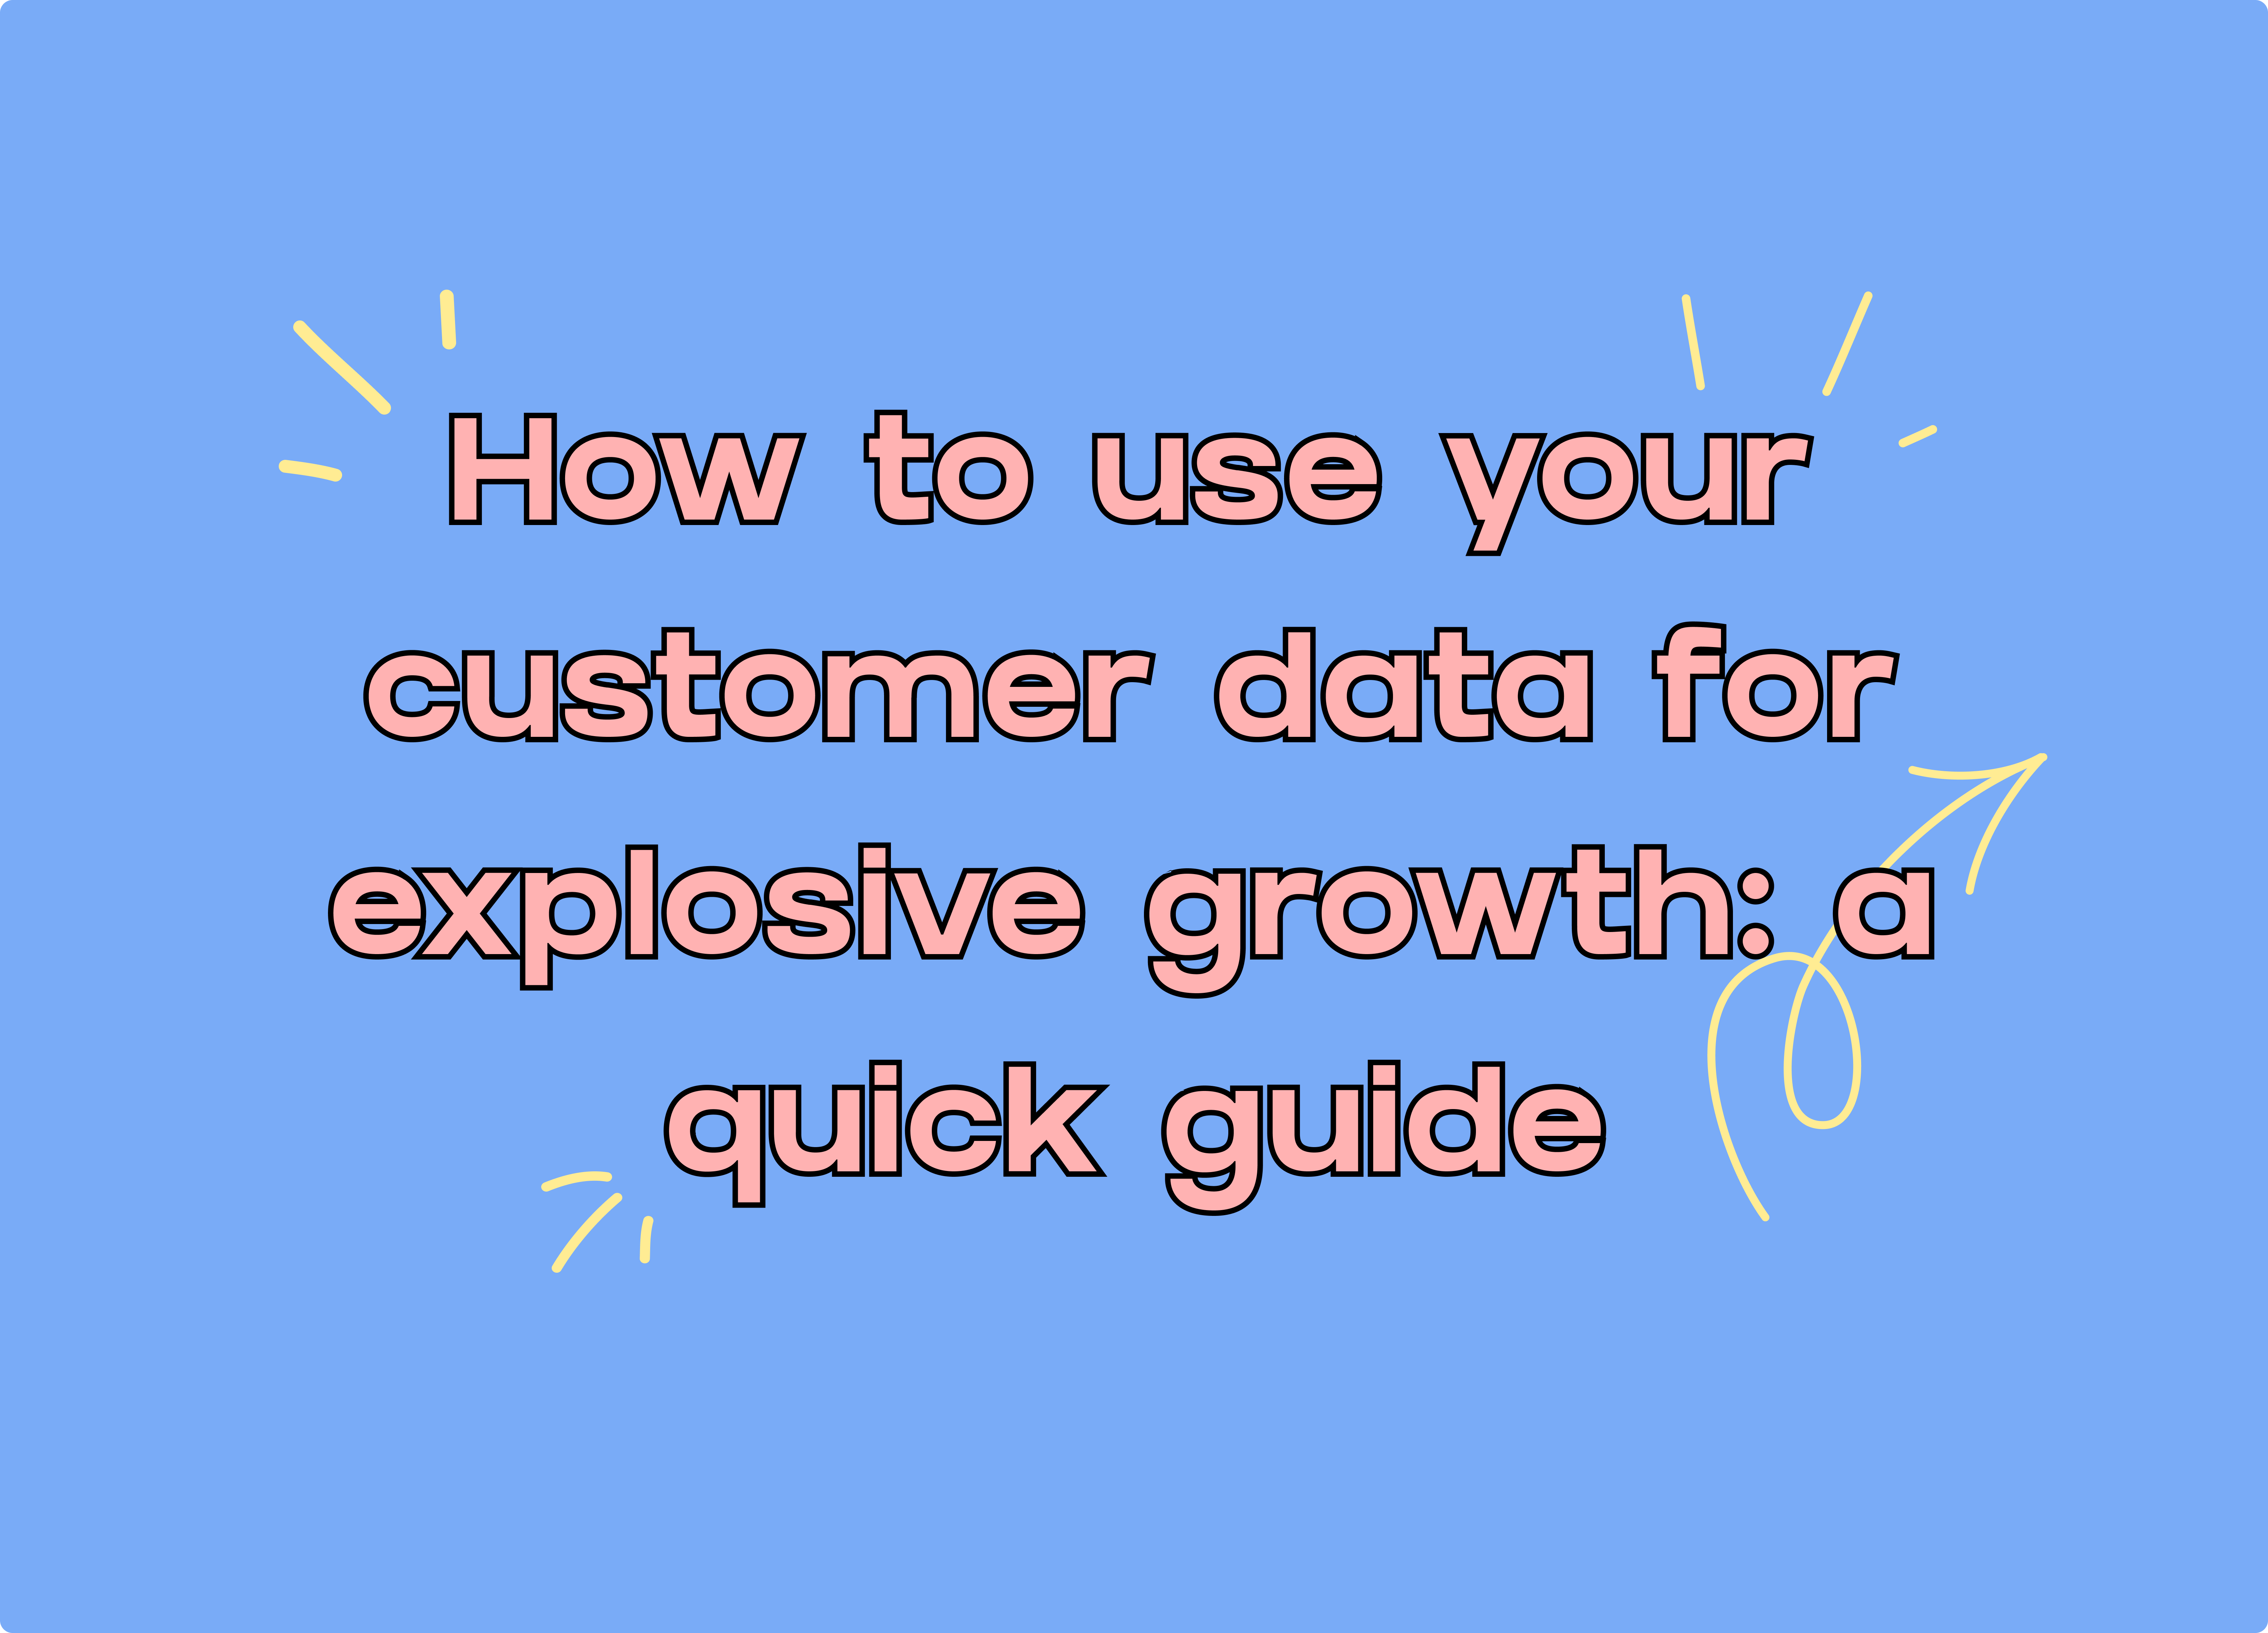 How To Use Your Customer Data For Explosive Growth: A Quick Guide